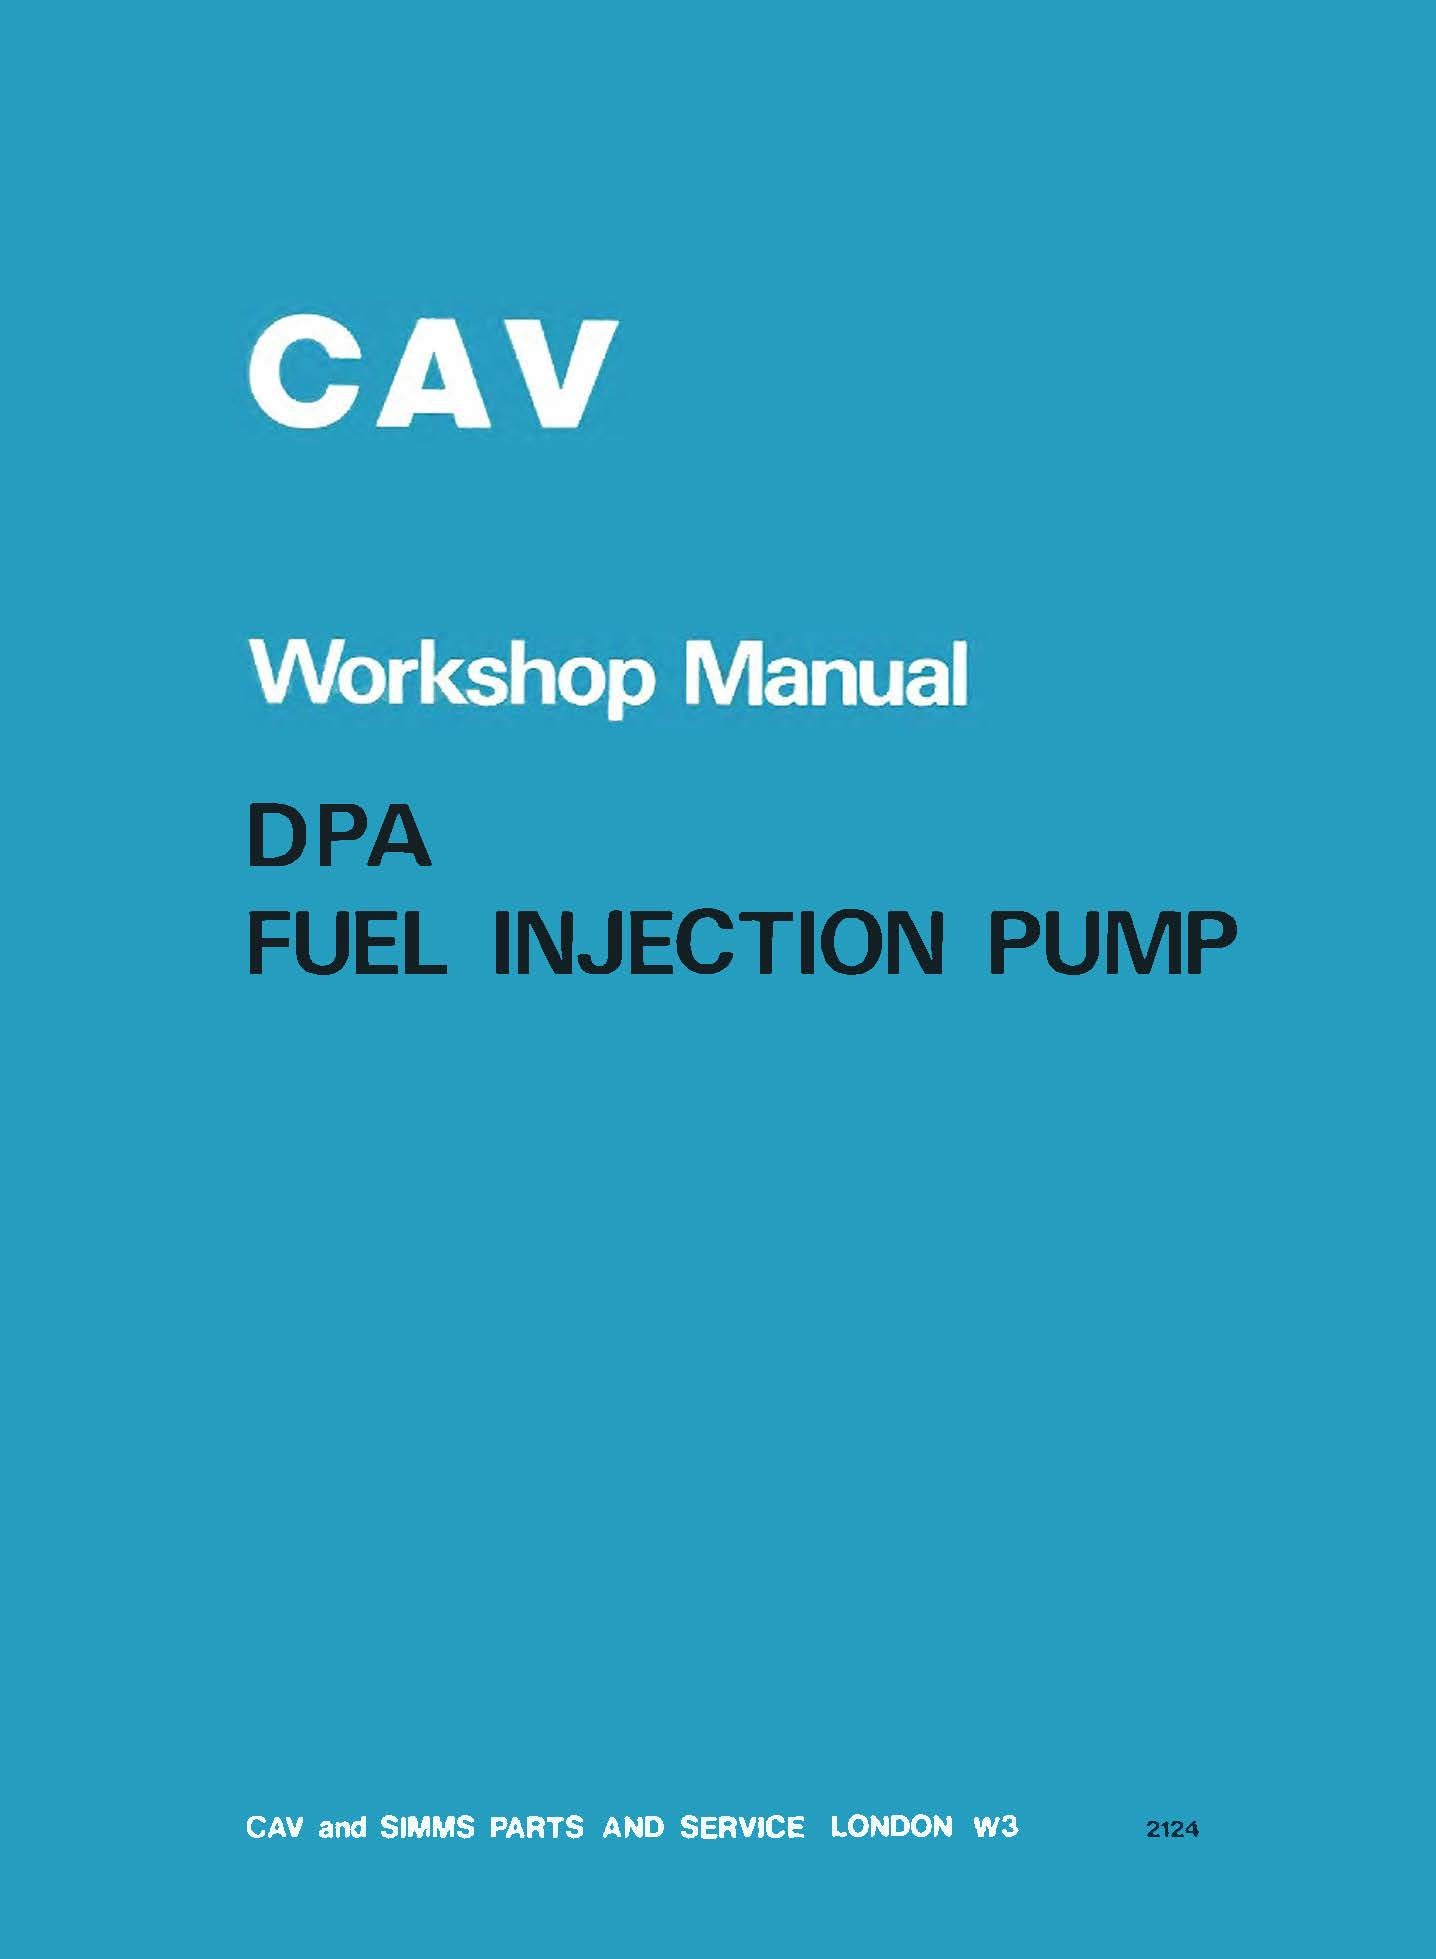 CAV DPA Fuel Injection Pump Mechanically Governed Workshop Manual